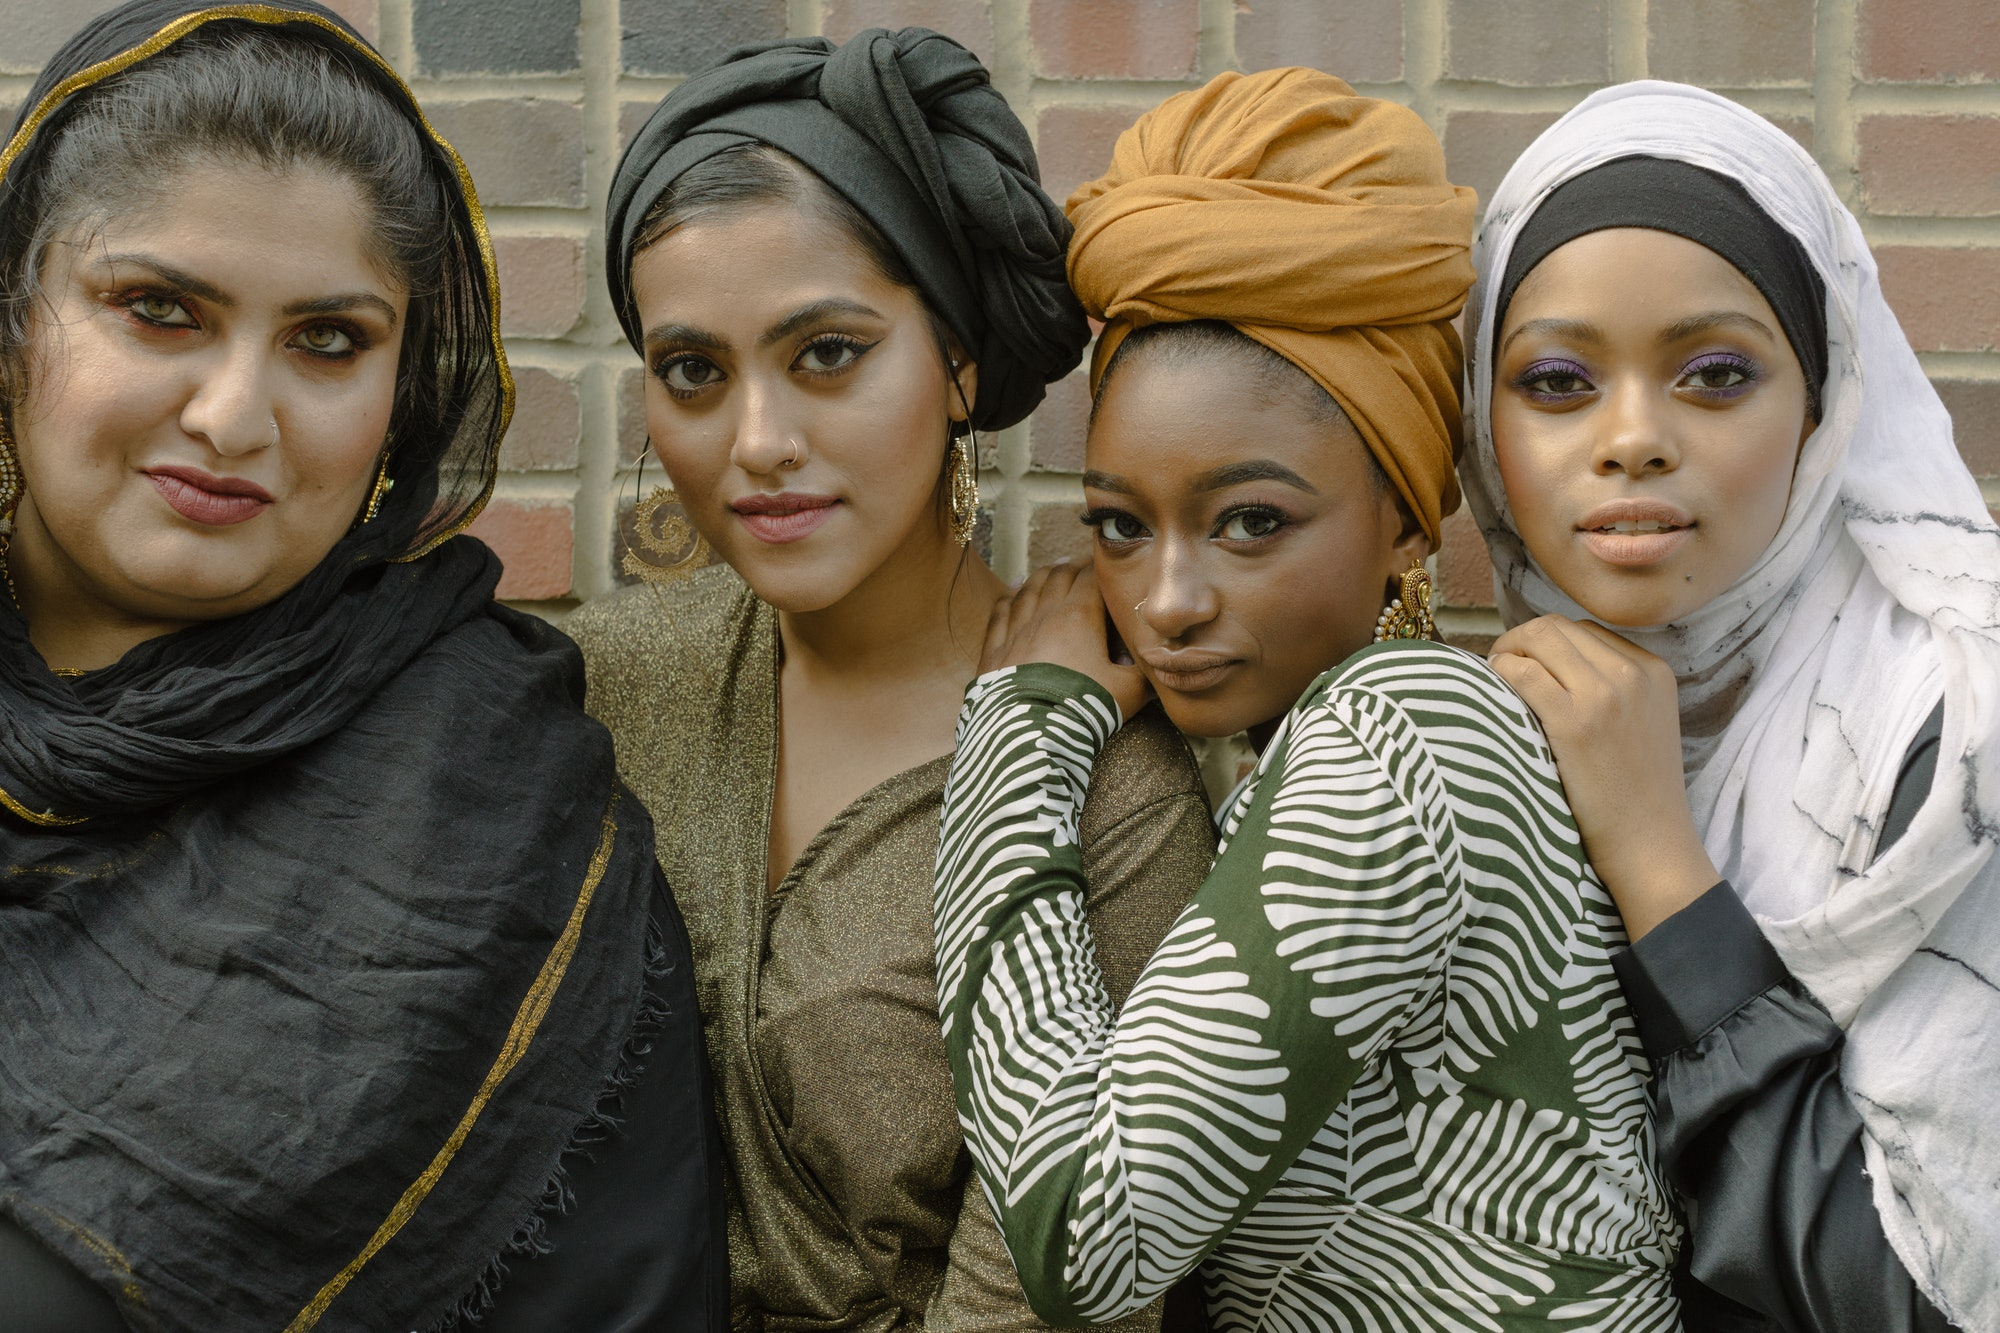 clarendon hills muslim single women A monk (/ m ʌ ŋ k /, from greek: μοναχός, monachos, single, solitary via latin monachus) is a person who practices religious asceticism by monastic living, either alone or with any number of other monks.